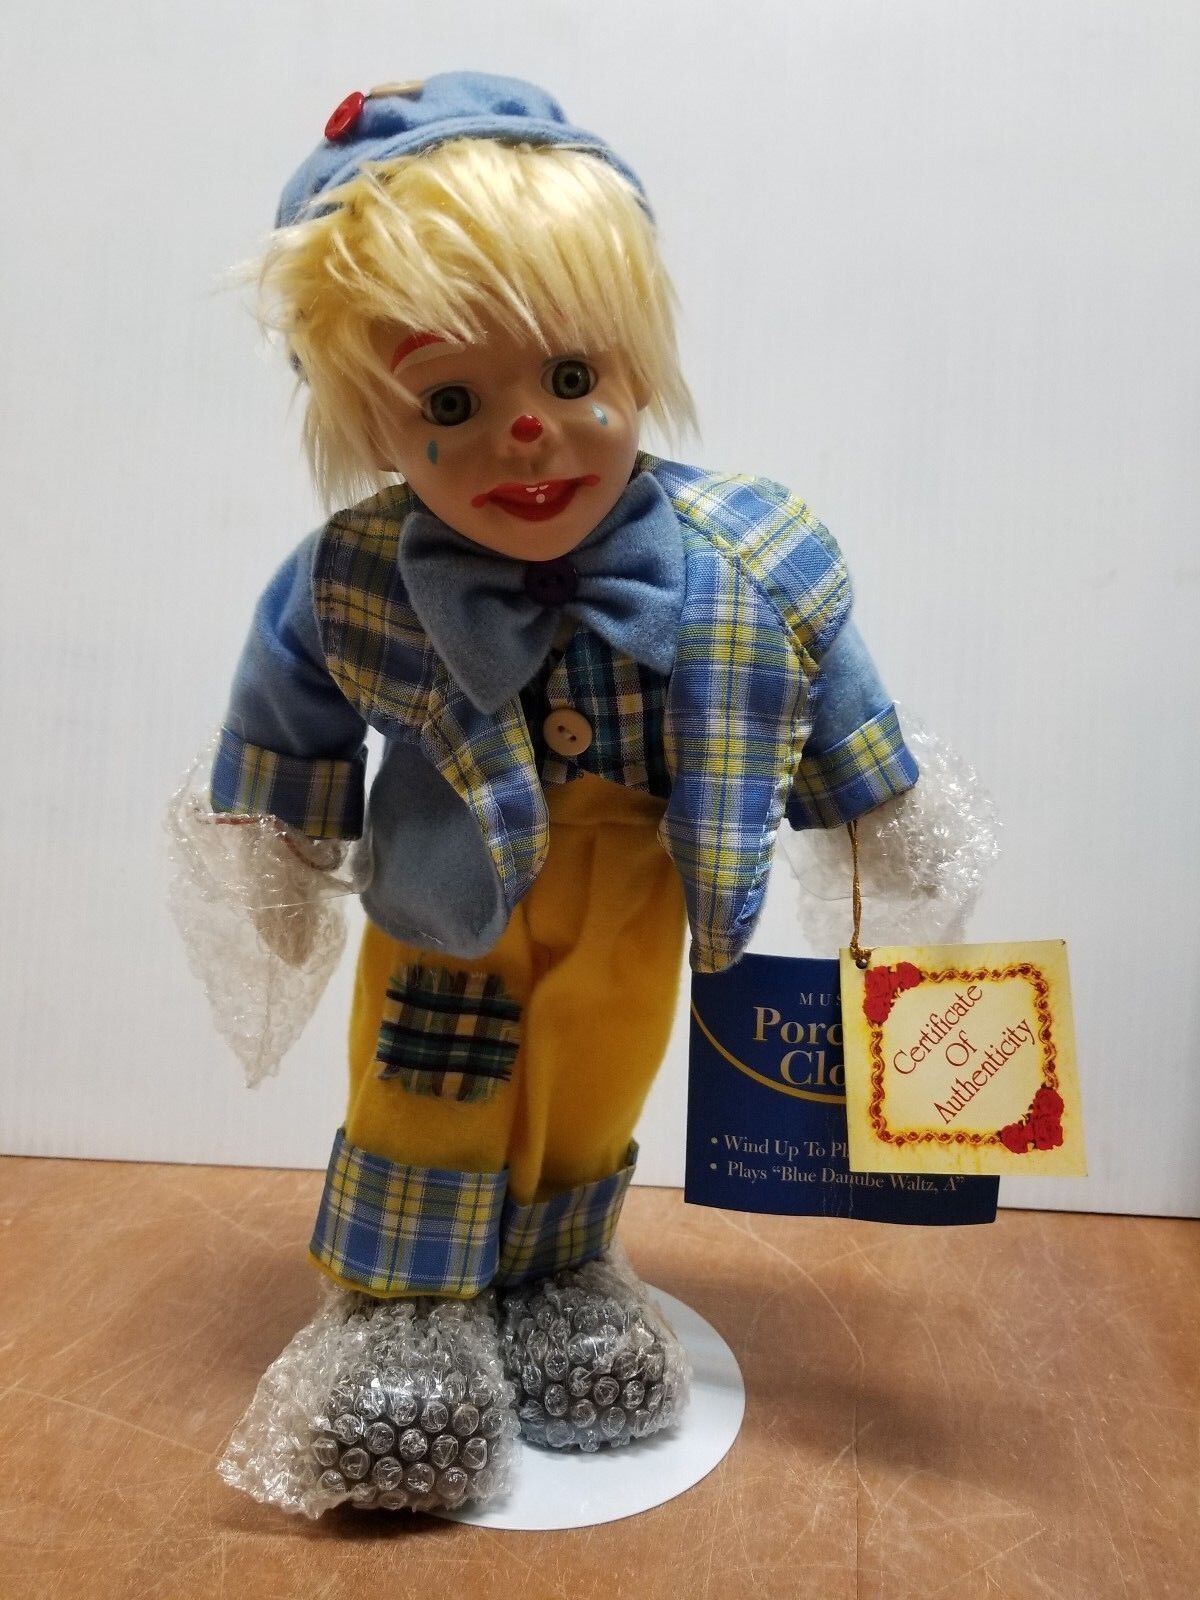 NEW Porcelain Collectible Musical Clown  RARE FIND Collector's Choice(FC37-1)